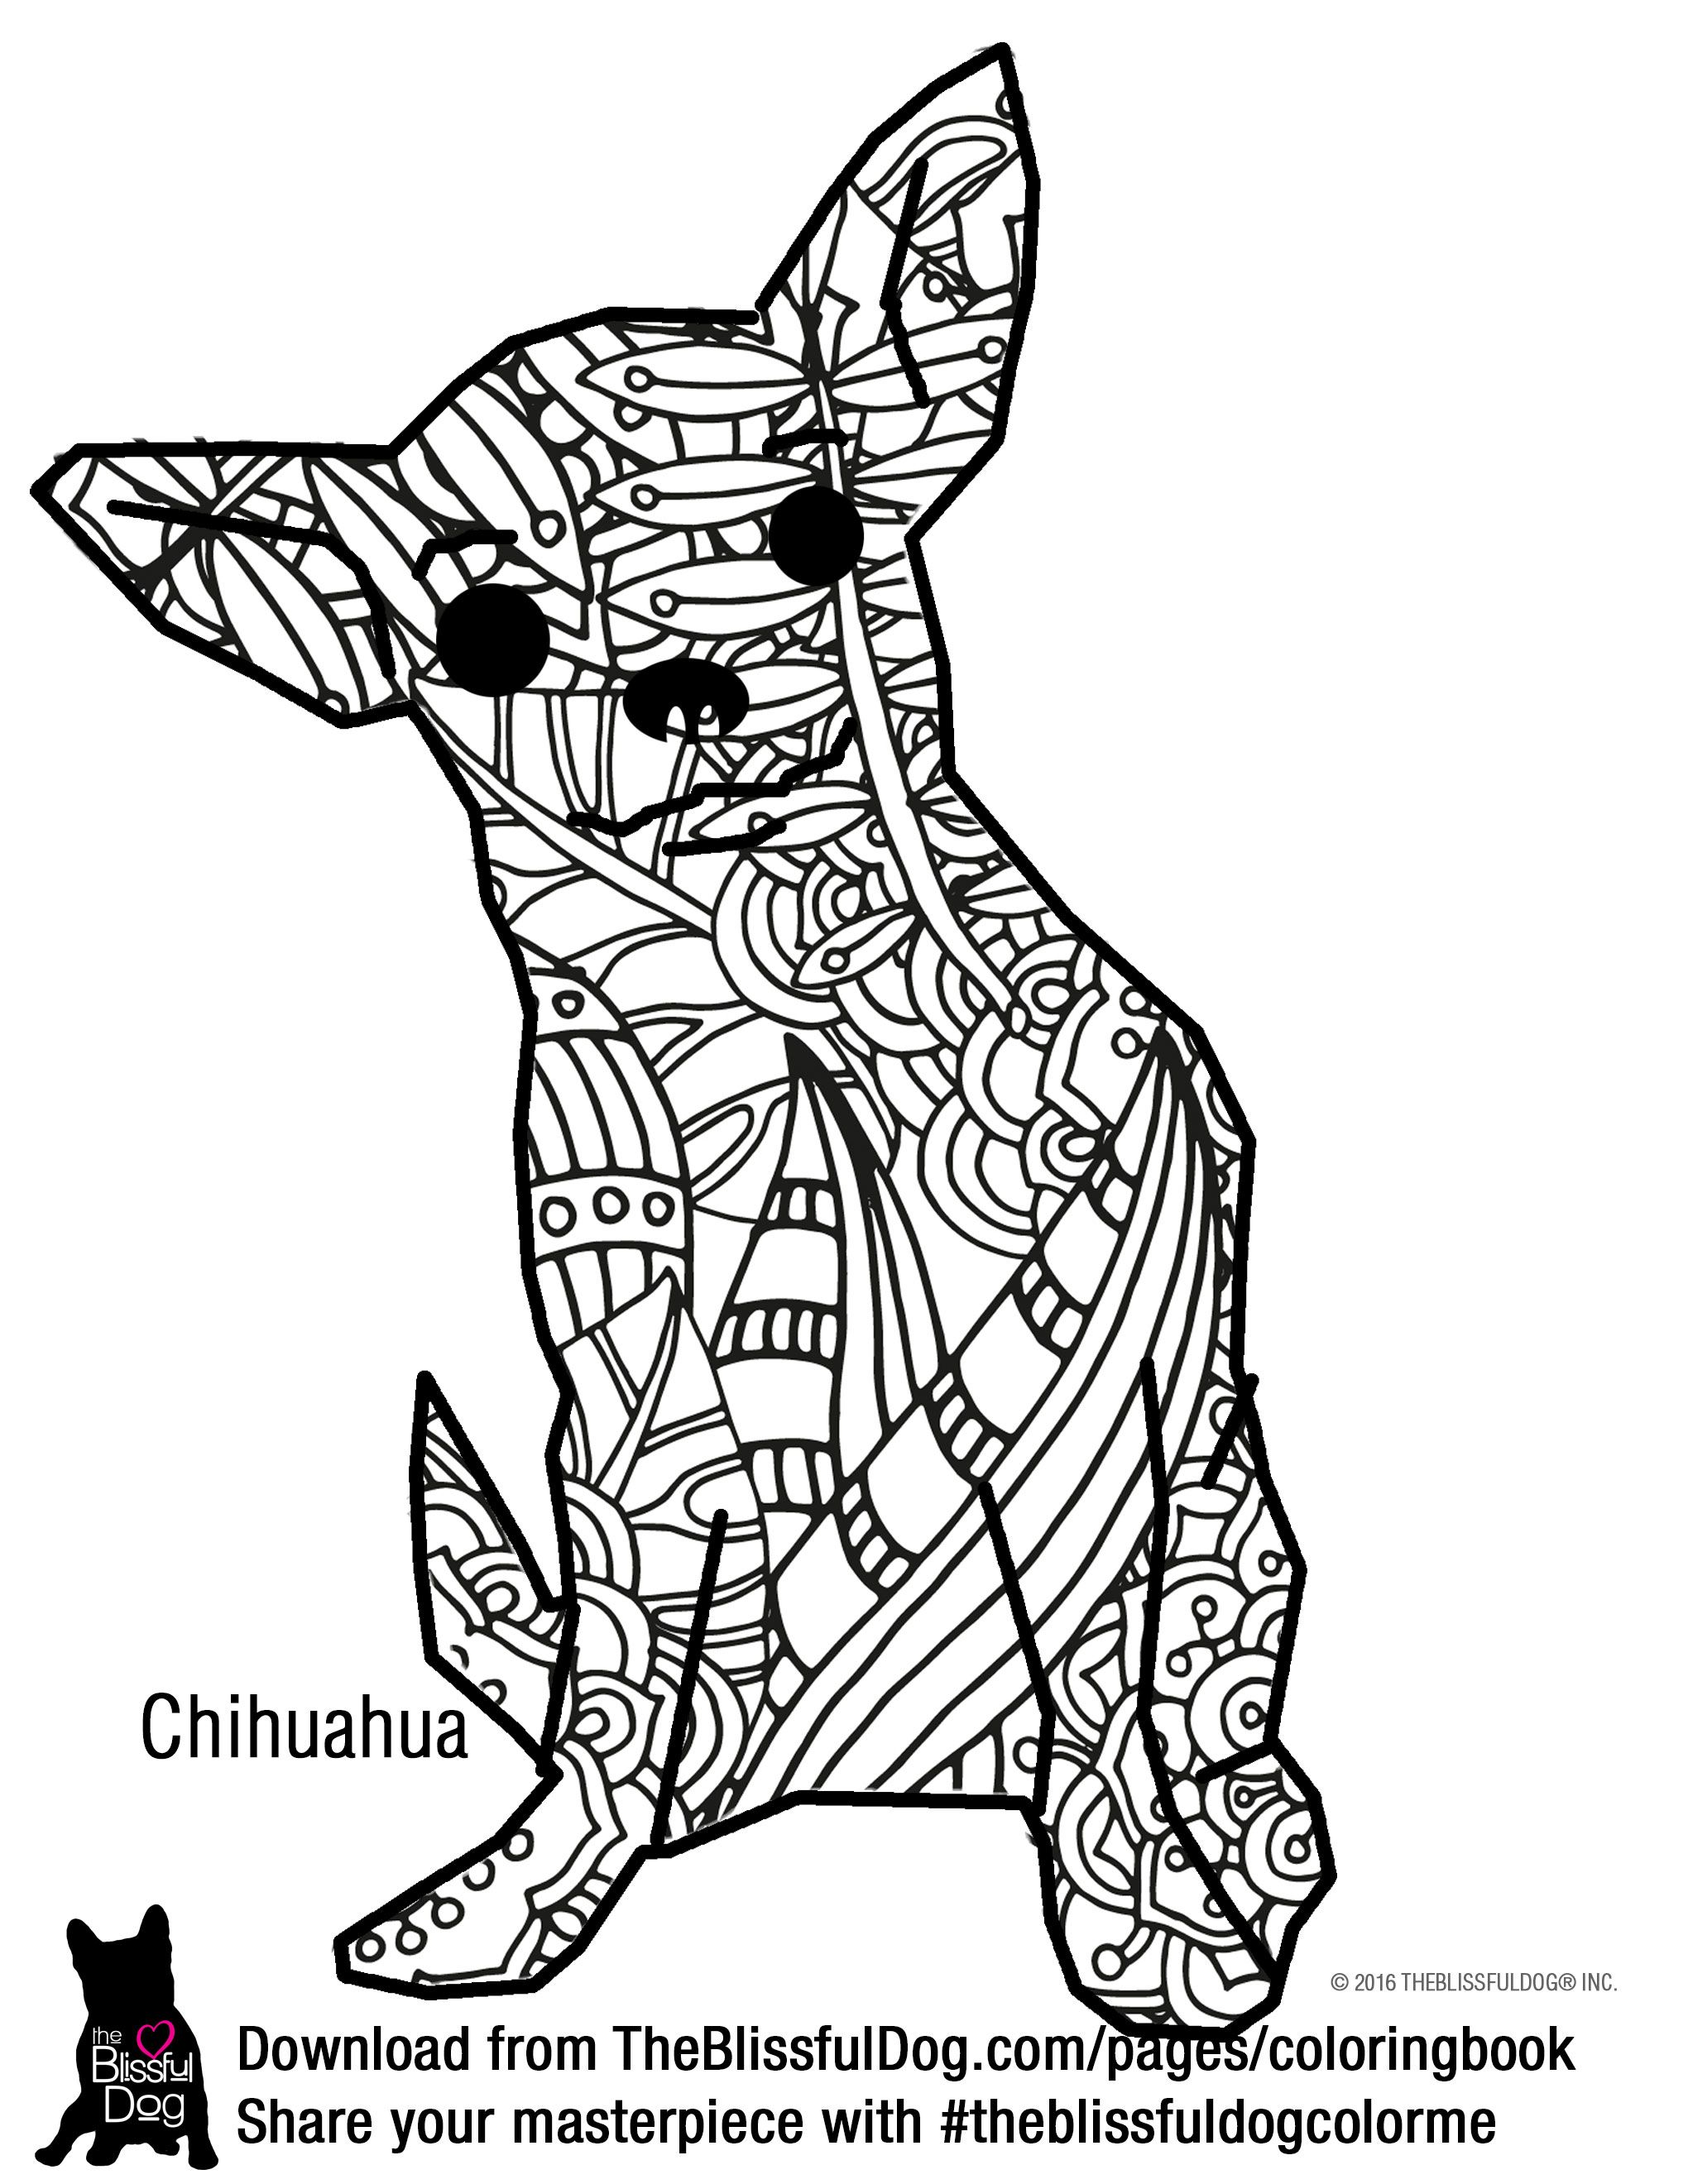 Coloring Book | A-COLORING BOOK PAGES | Pinterest | Embroidery and Craft